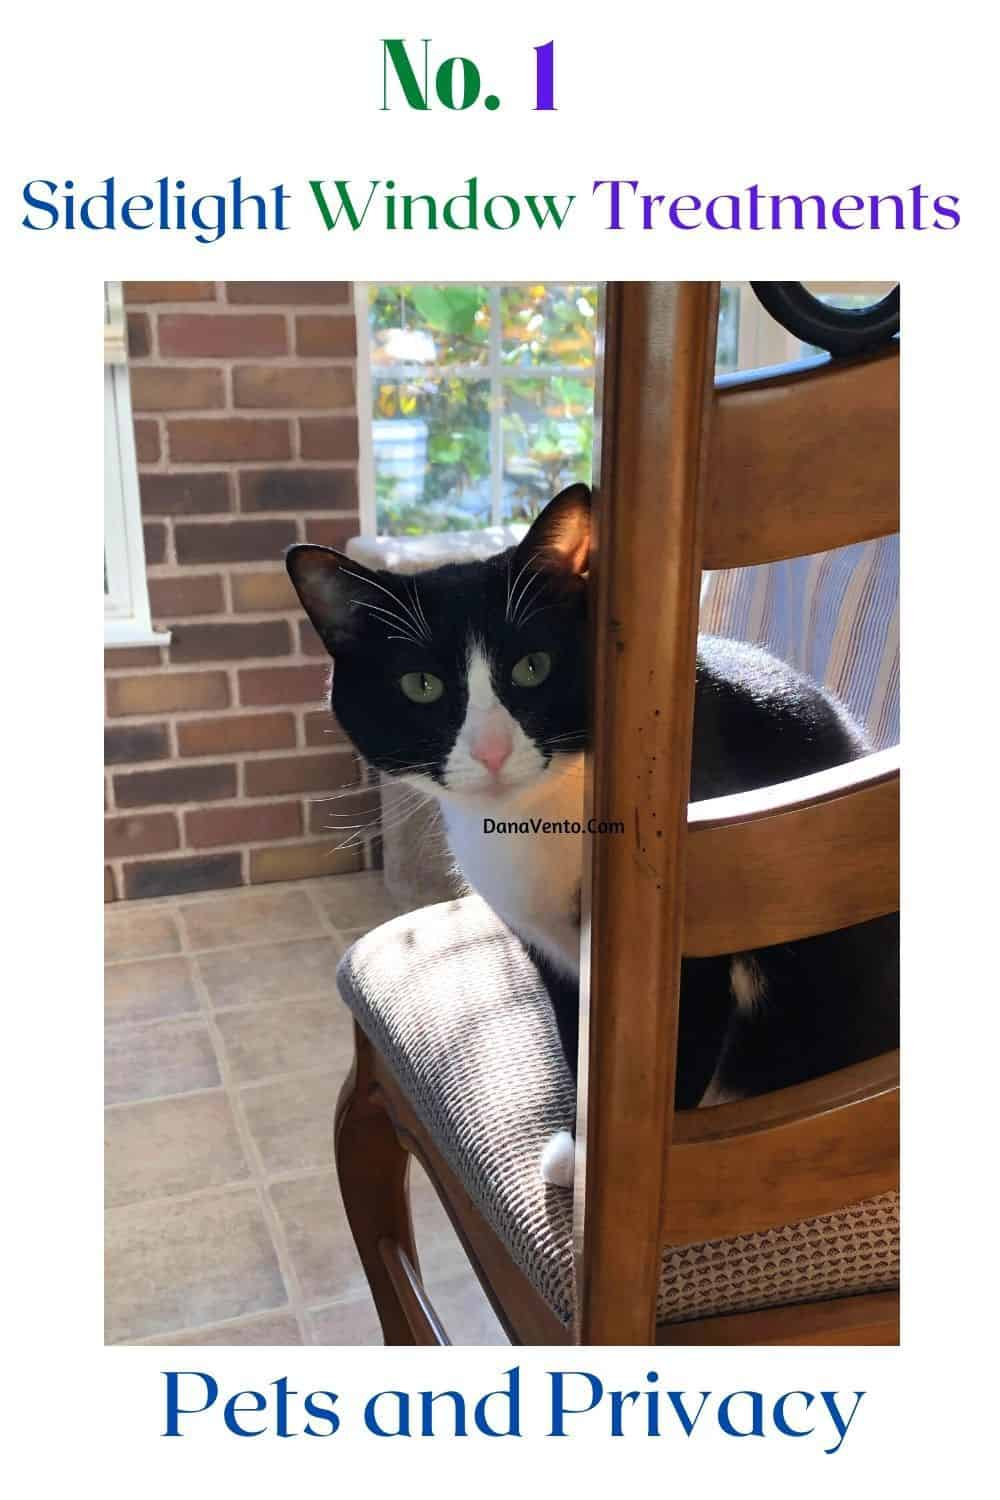 Sidelight Window Treatments for Pets and Privacy Bella sitting in a chair